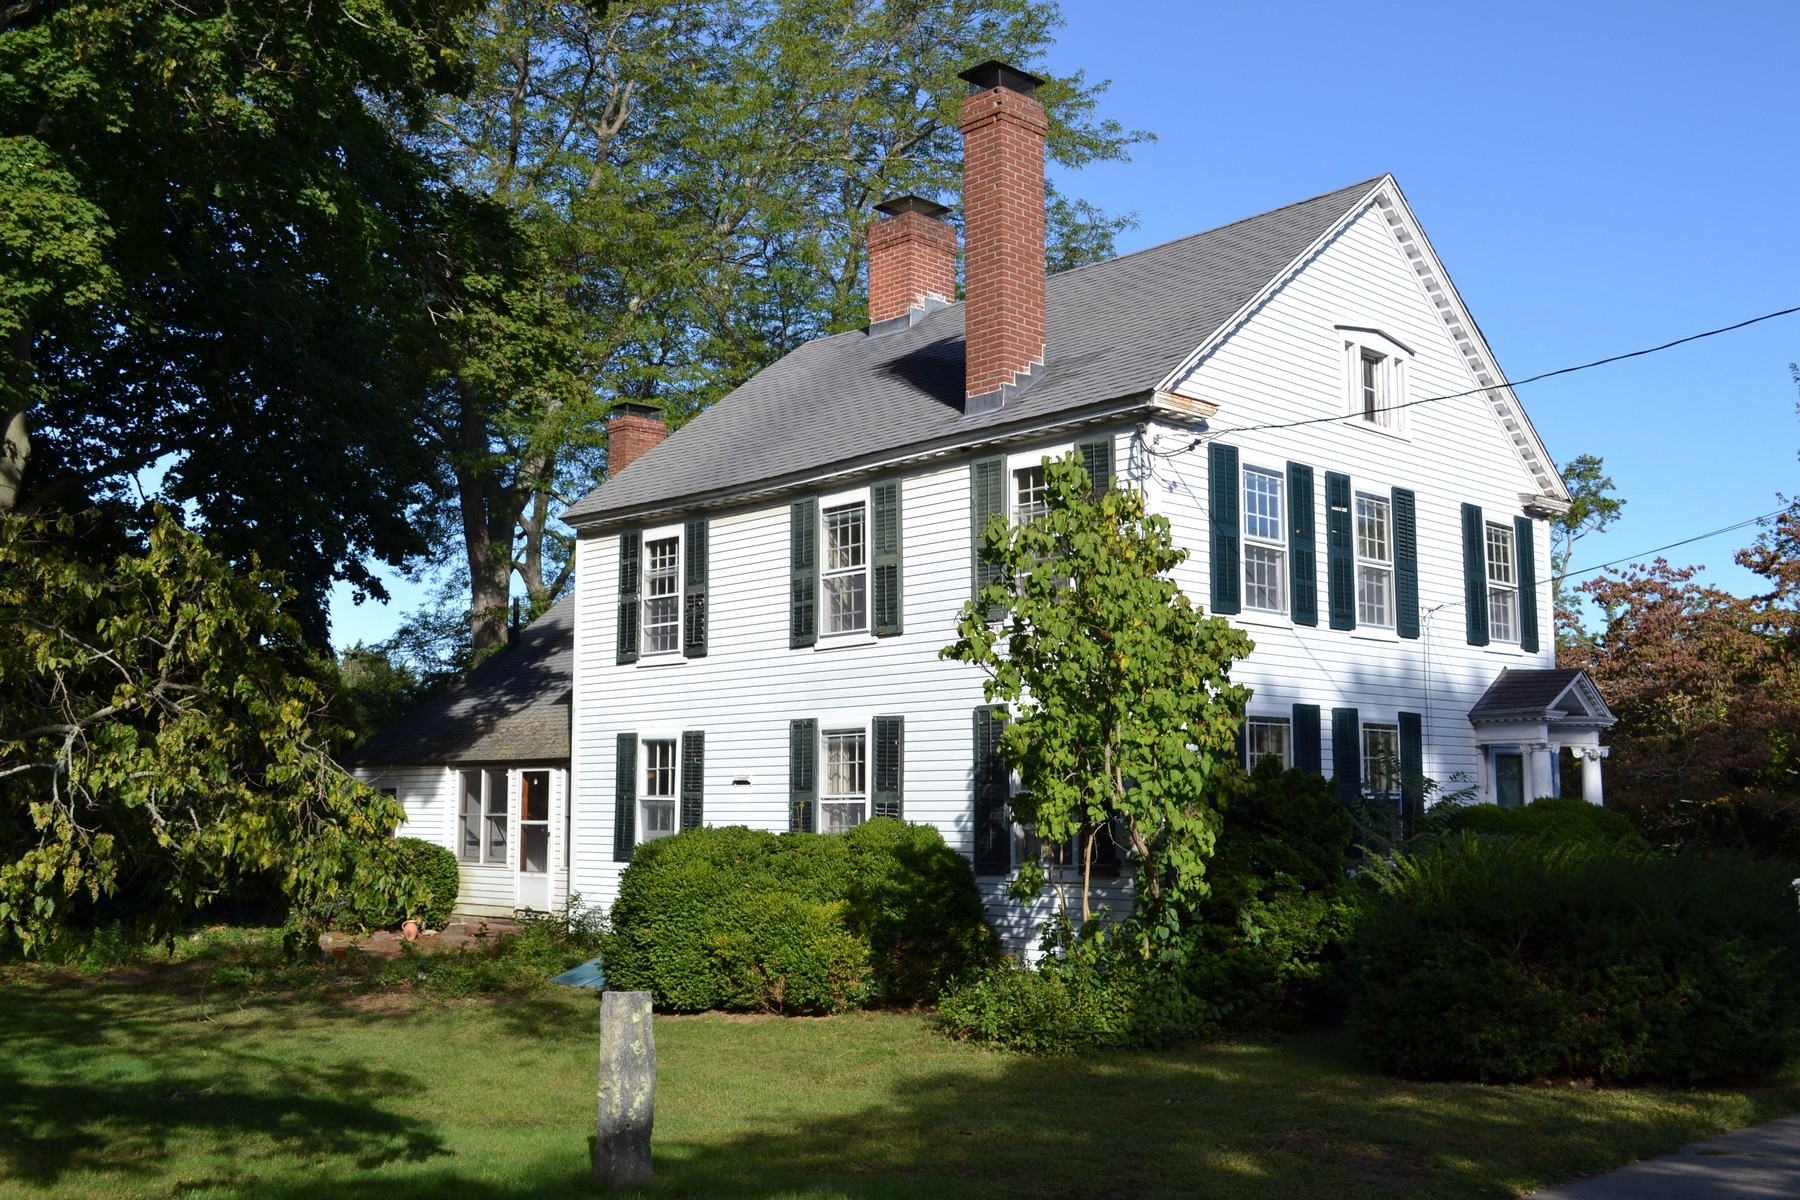 Casa Unifamiliar por un Venta en Historic Colonial 69 Cromwell Place Old Saybrook, Connecticut 06475 Estados Unidos